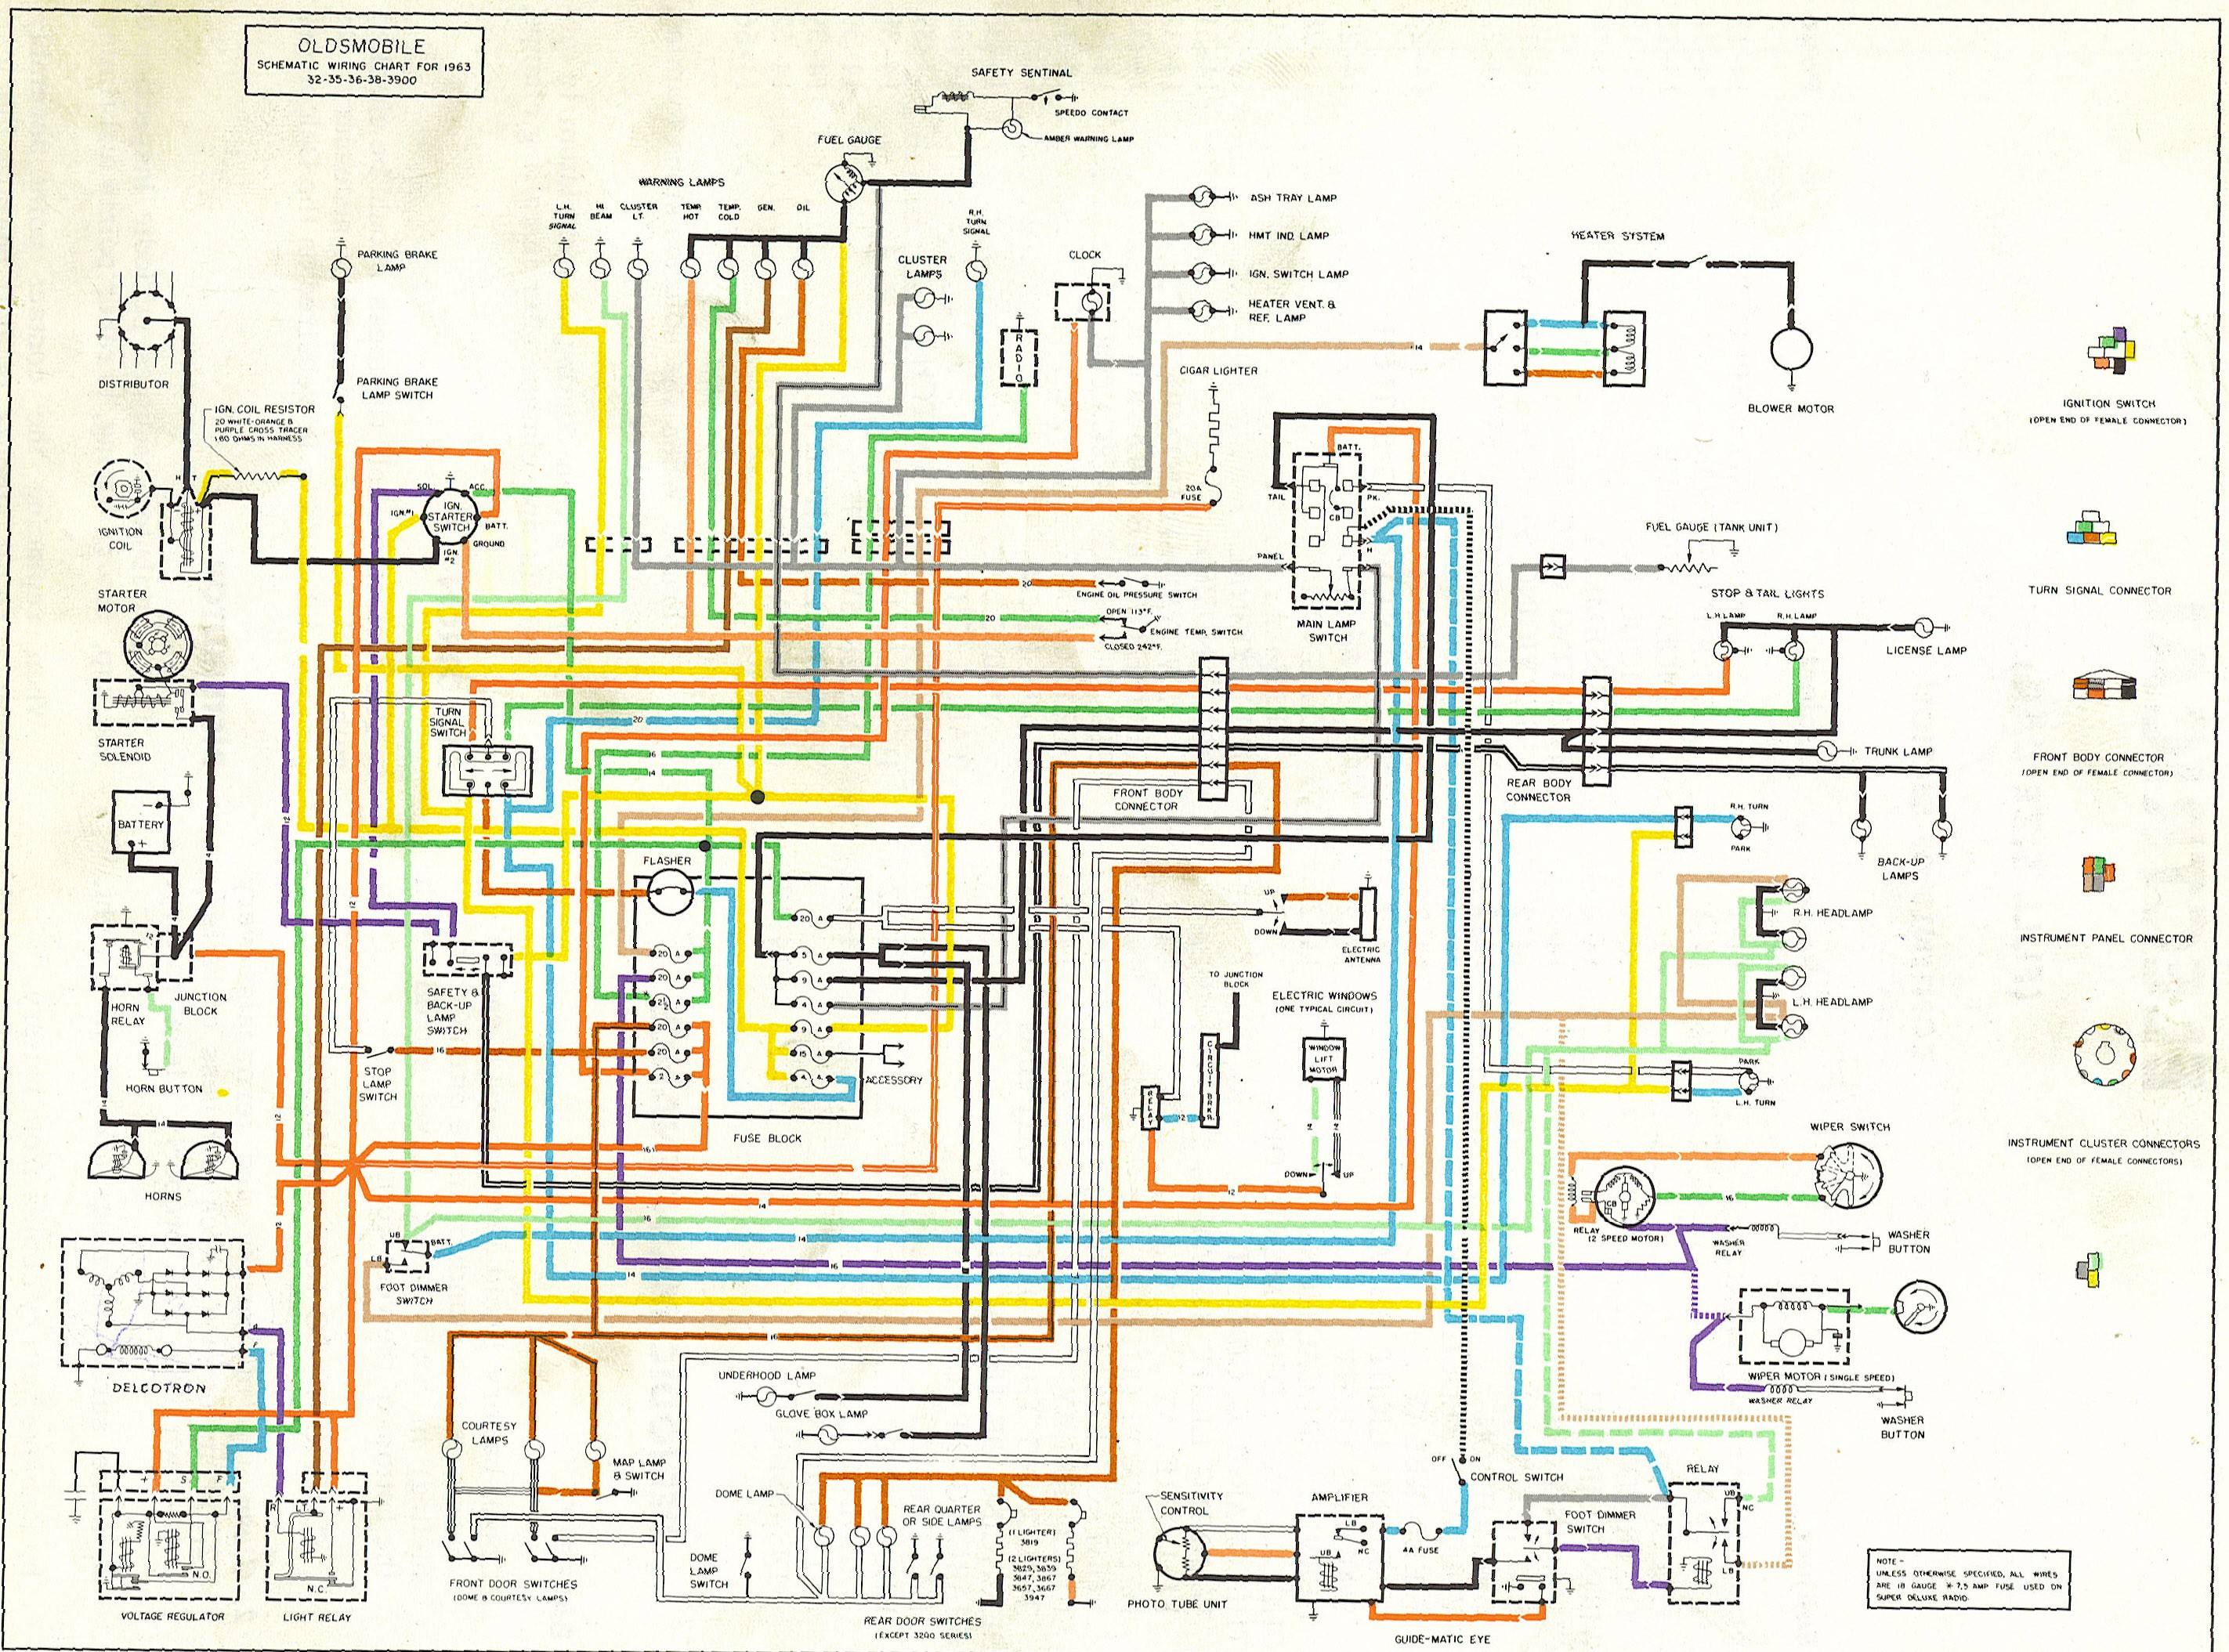 Wiring Diagram for Kmise Pickups to Switch Oldsmobile Wiring Diagrams the Old Car Manual Project Of Wiring Diagram for Kmise Pickups to Switch